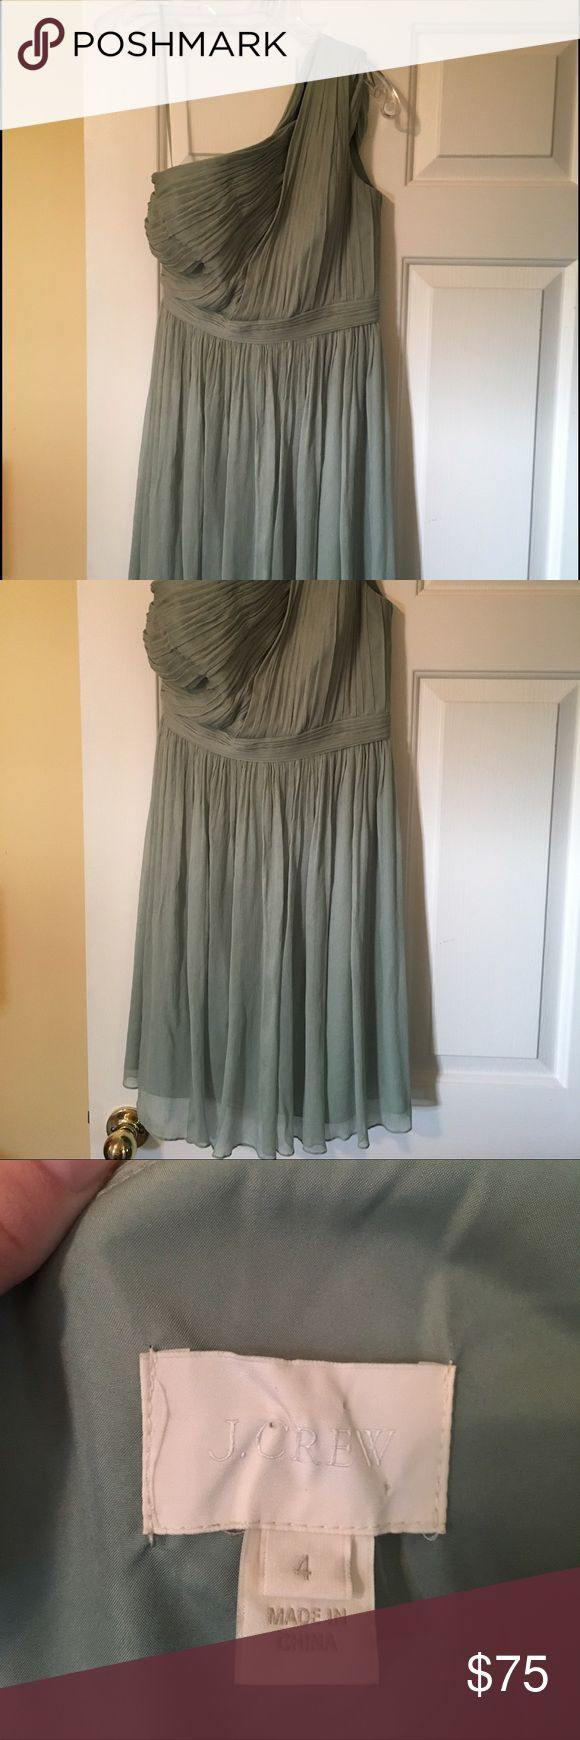 J Crew bridesmaid dress Beautiful one shoulder dress with 2 straps! Only wore once. Excellent condition. Will take best offer!! Dresses One Shoulder